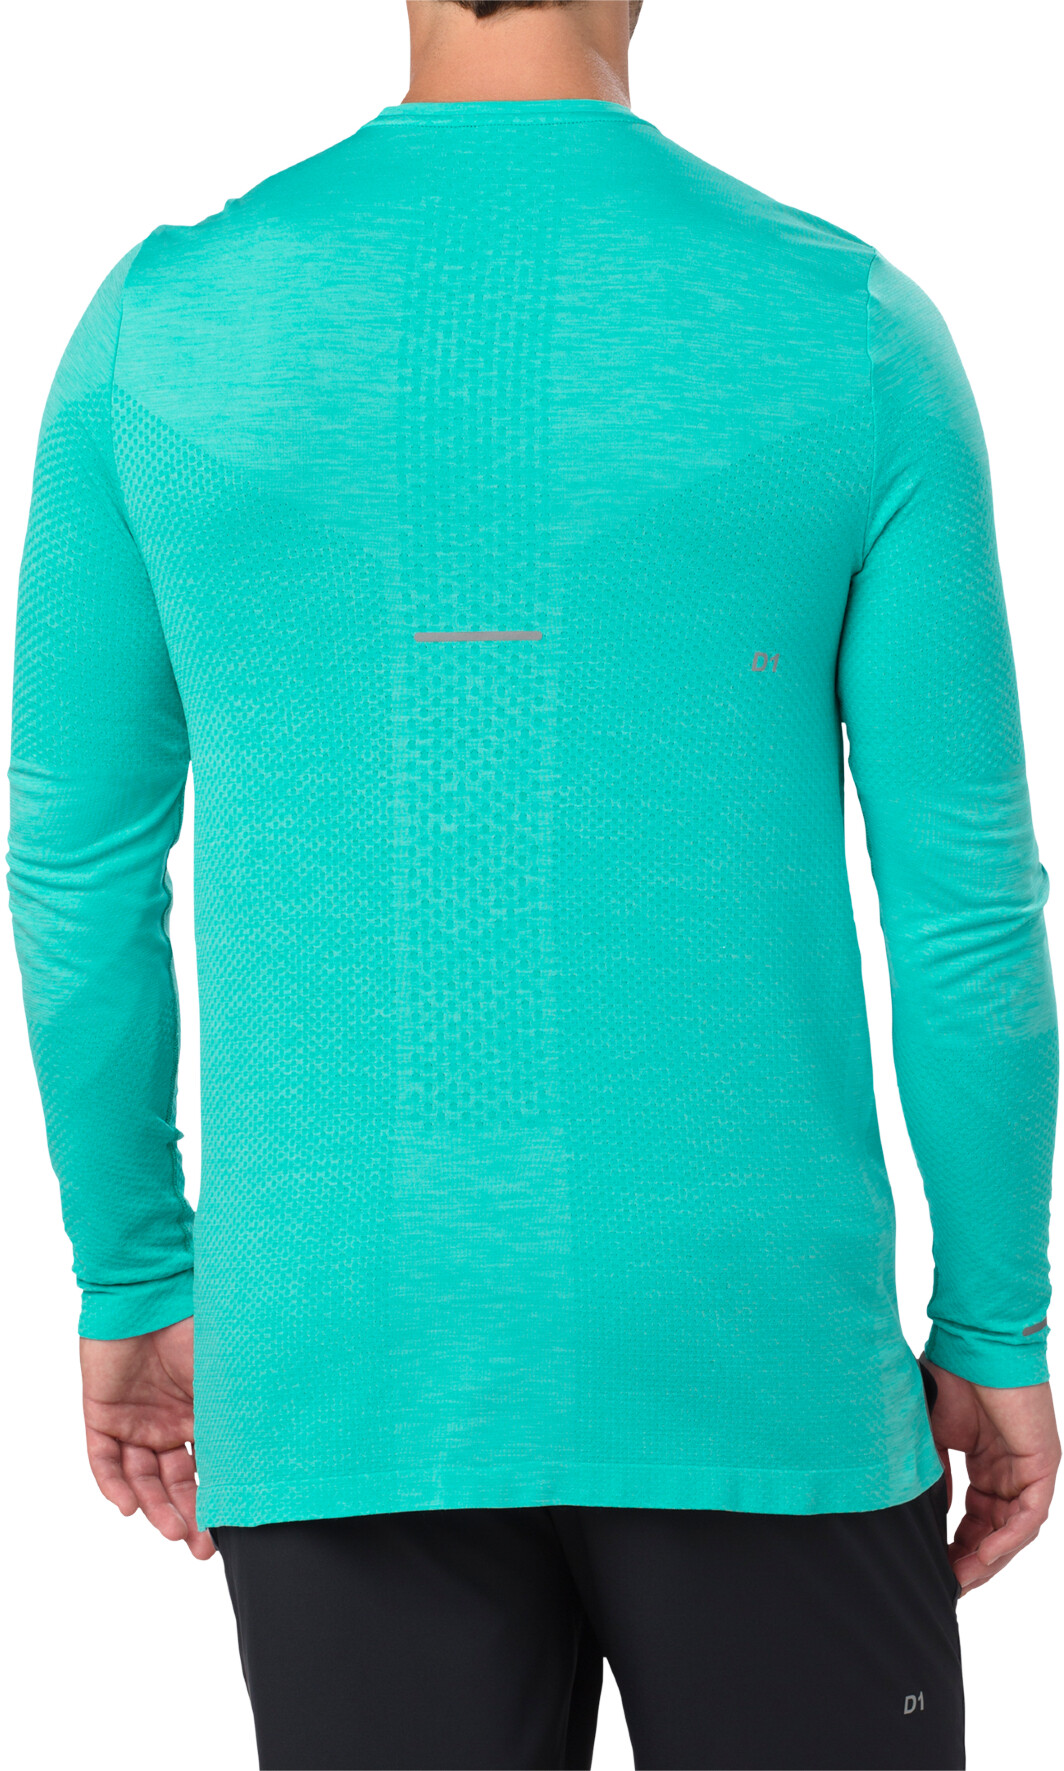 b7be1c566b4 asics Seamless - T-shirt manches longues running Homme - turquoise ...